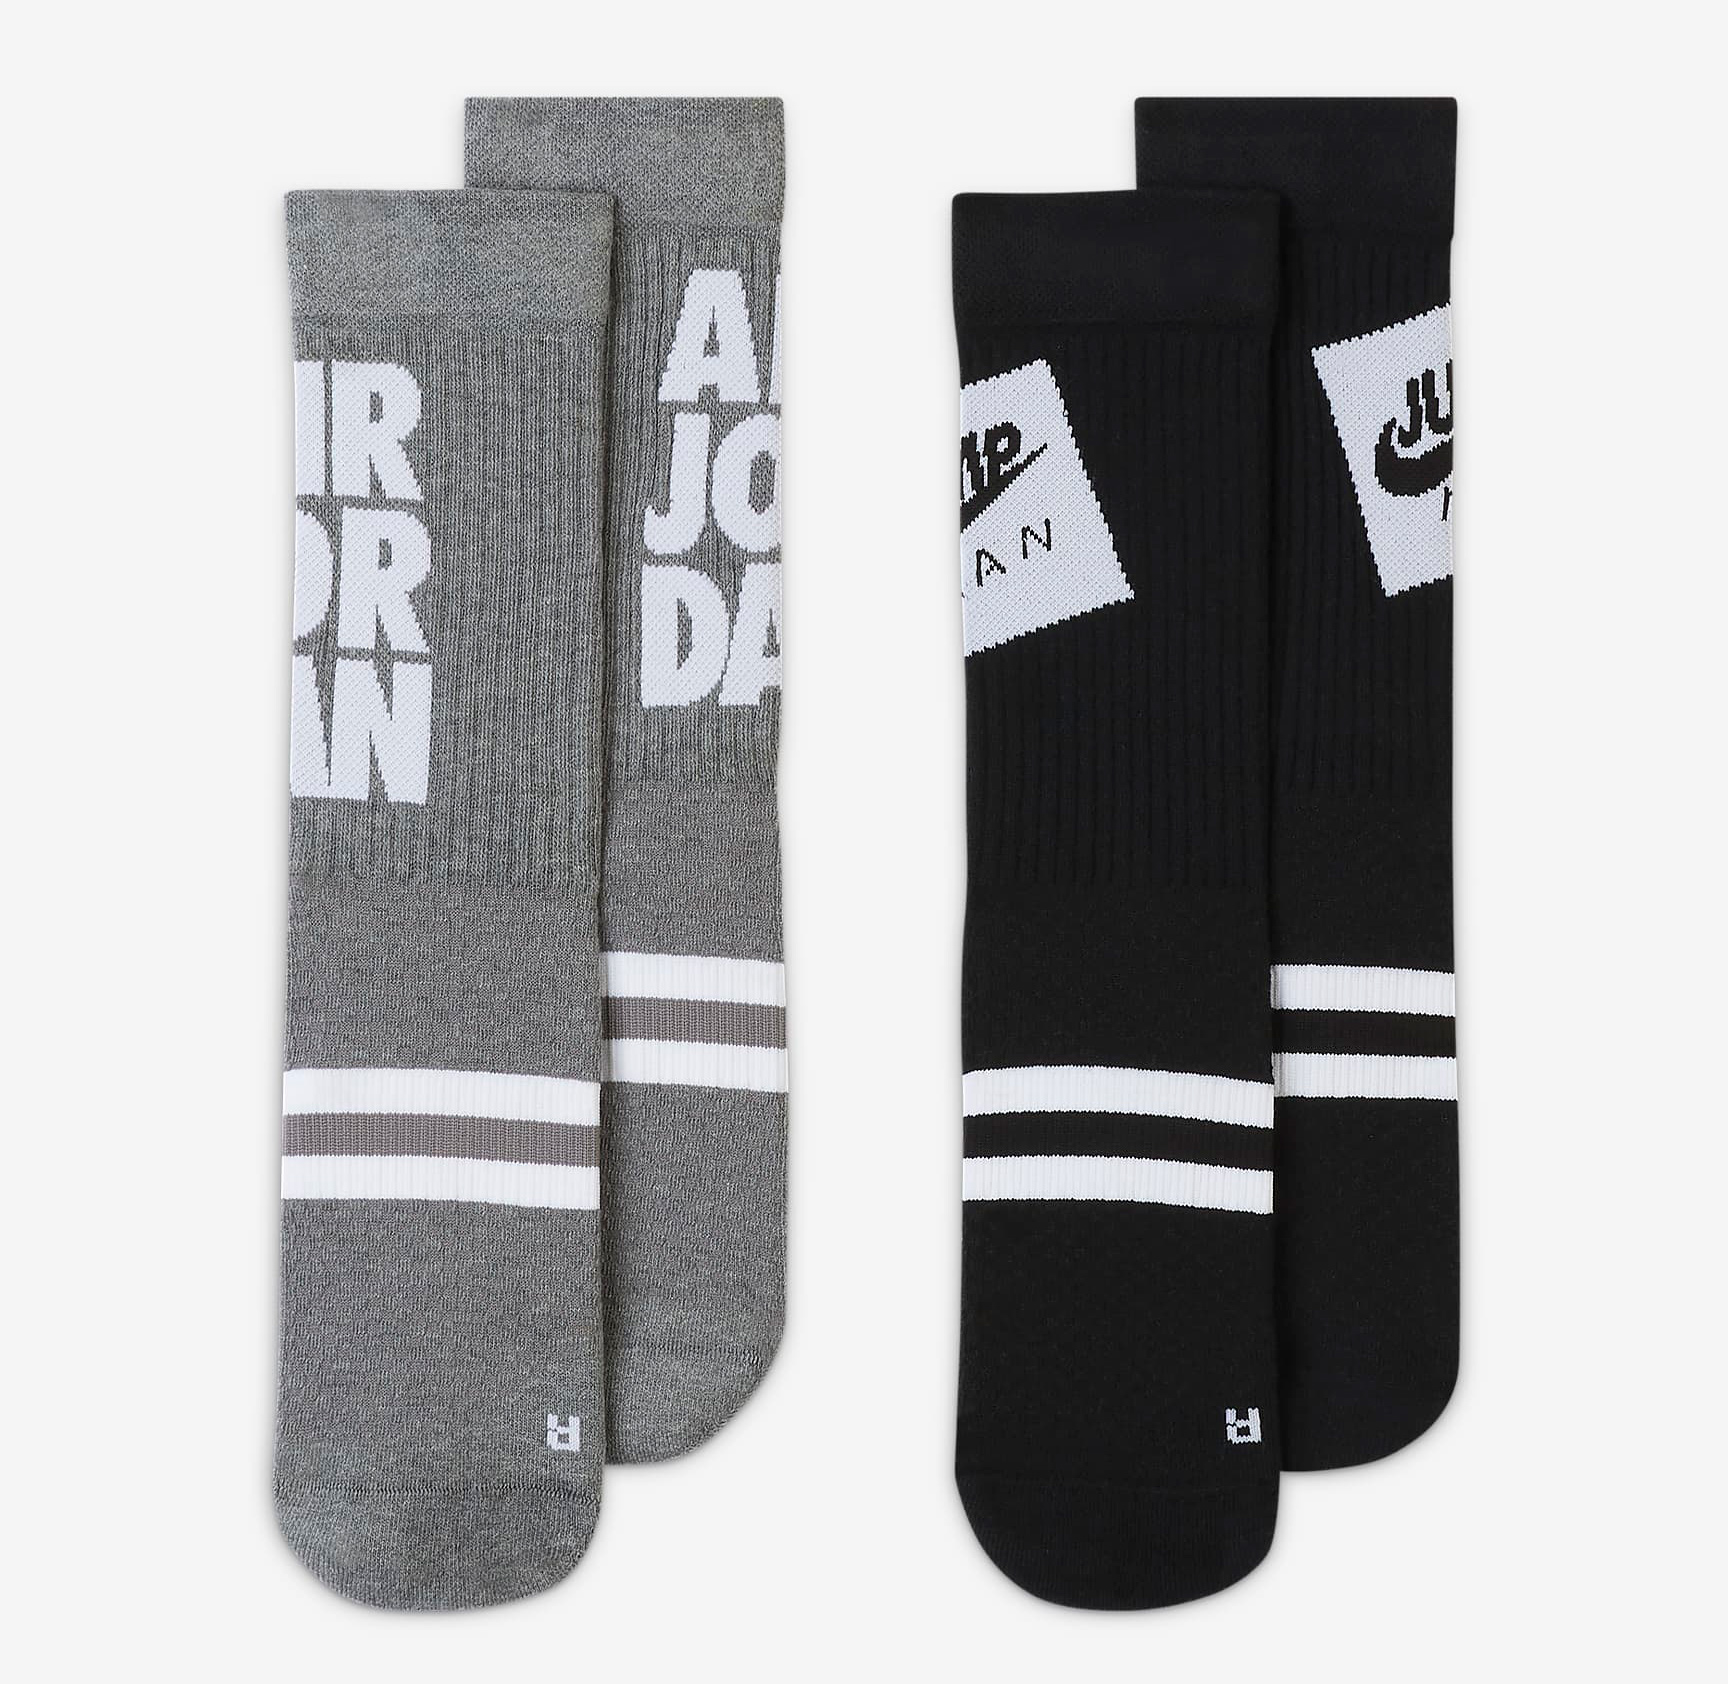 jordan-legacy-jumpman-classics-socks-grey-black-2-pack